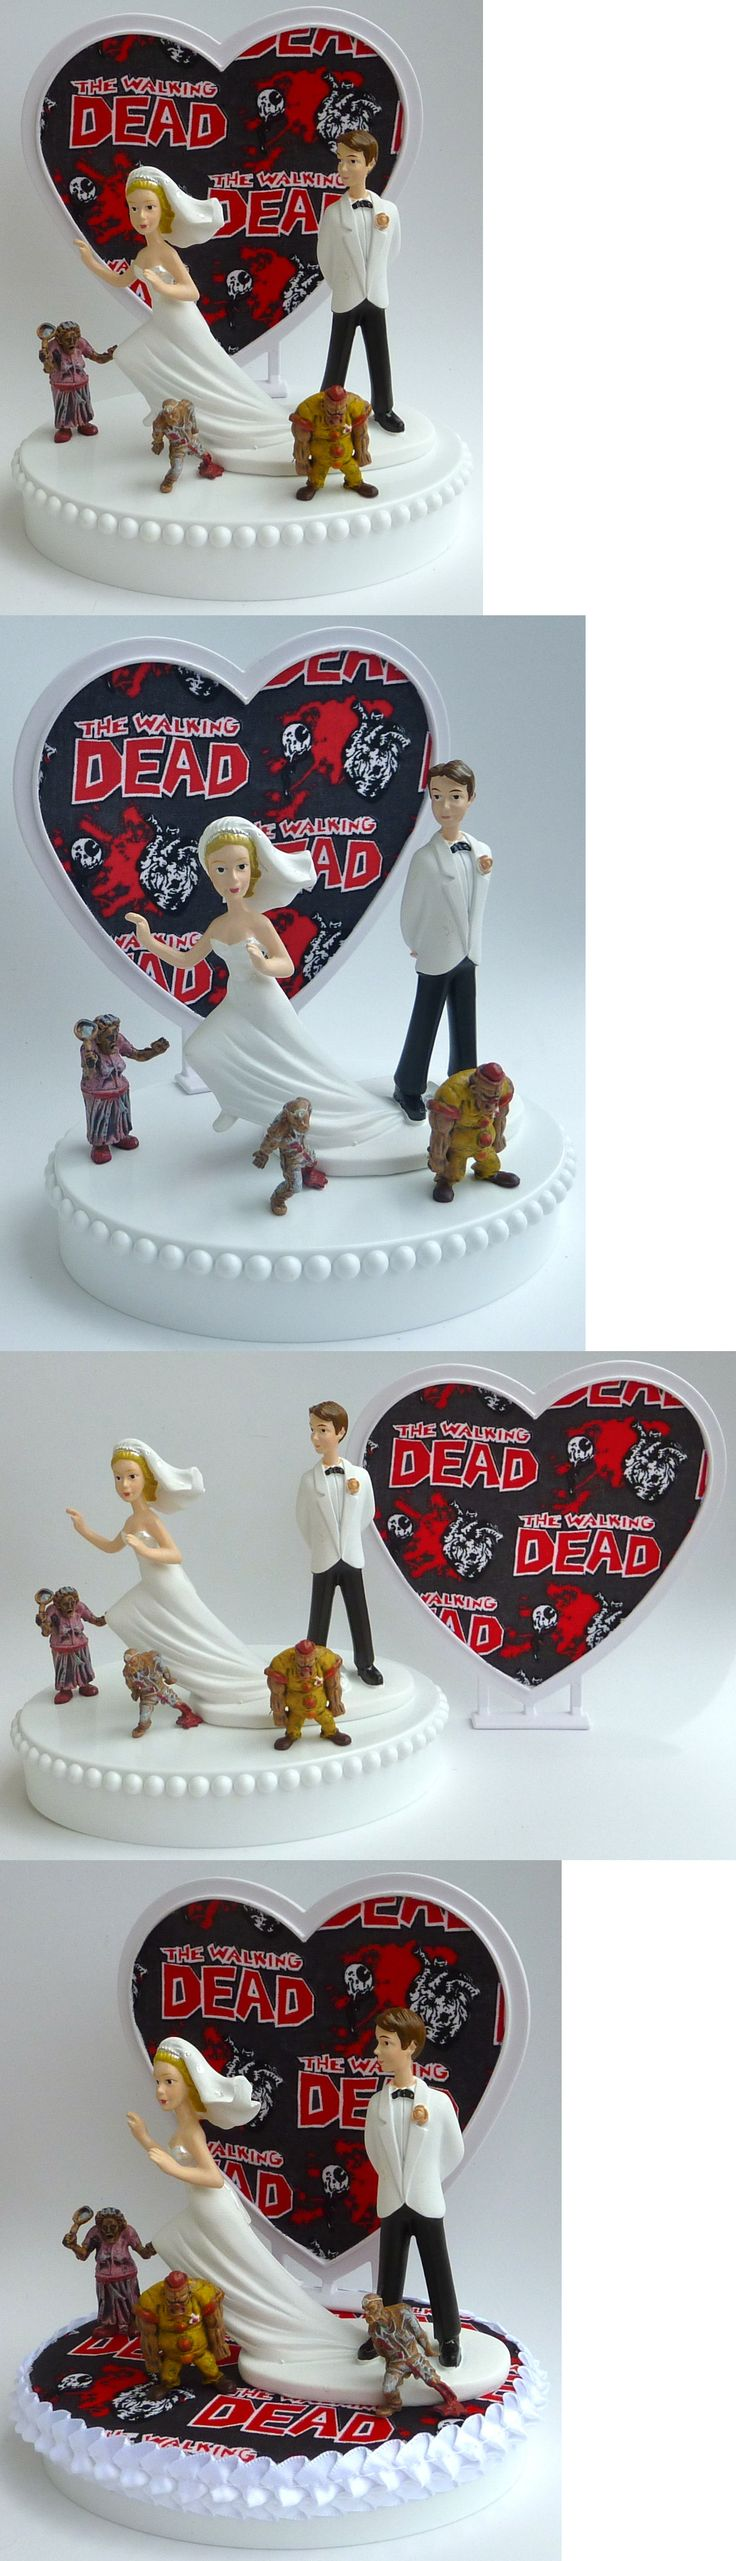 Wedding Cakes Toppers: Wedding Cake Topper Zombies The Walking Dead Runaway Bride Themed Groom W Garter -> BUY IT NOW ONLY: $59.99 on eBay!